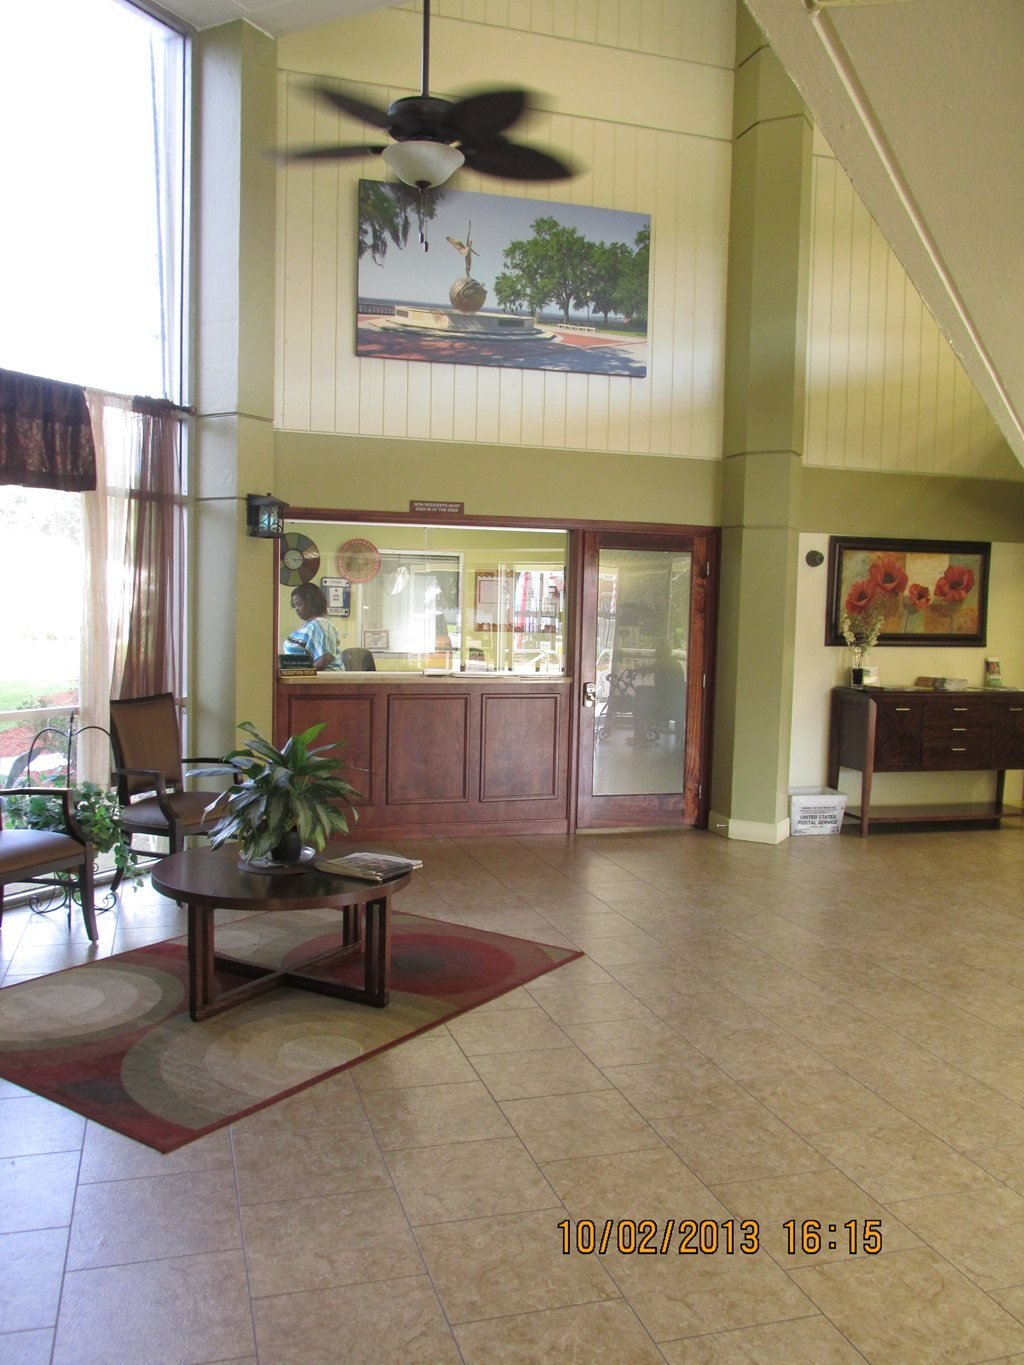 Best Florida Christian Apartments Jacksonville Fl With 4 Reviews Senioradvisor Com With Pictures